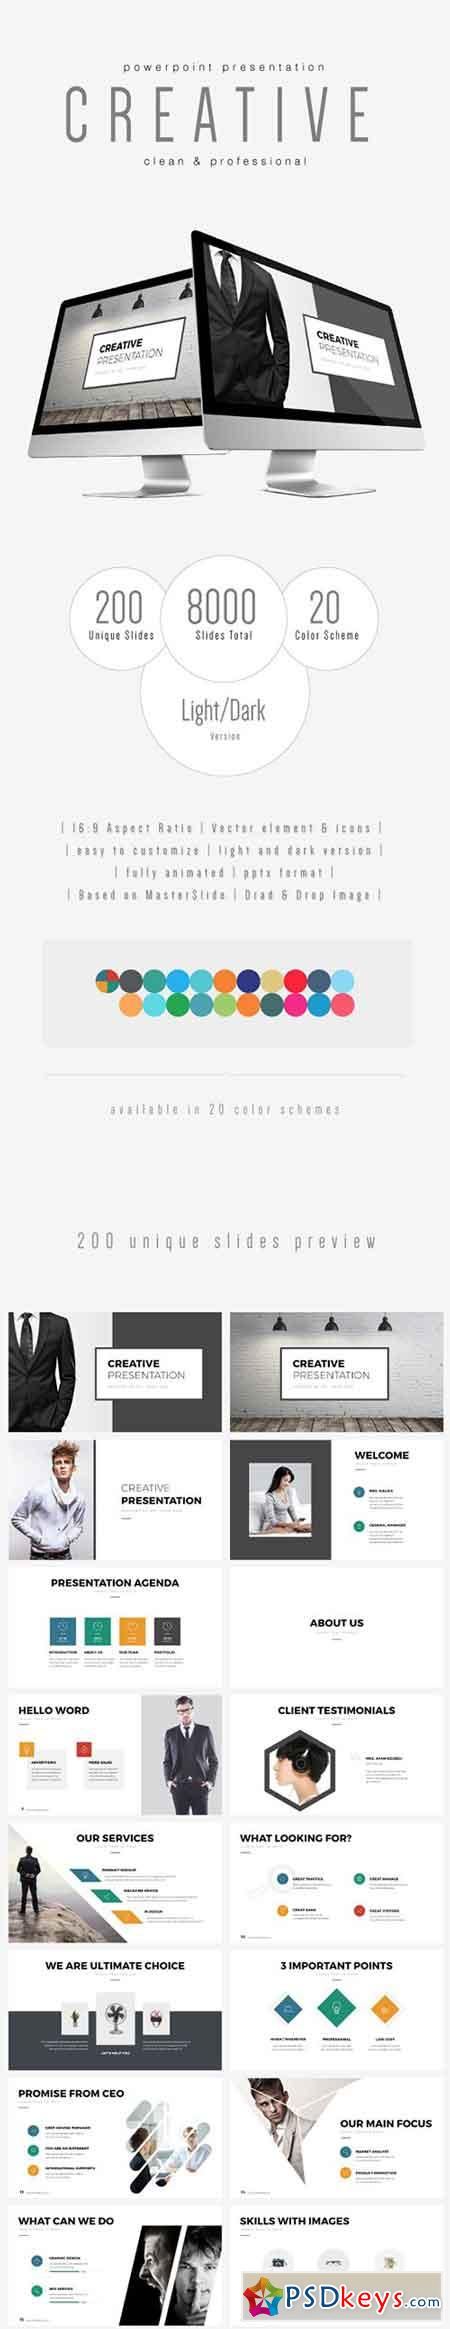 CREATIVE - Multipurpose PowerPoint Template (V.32) 18049620